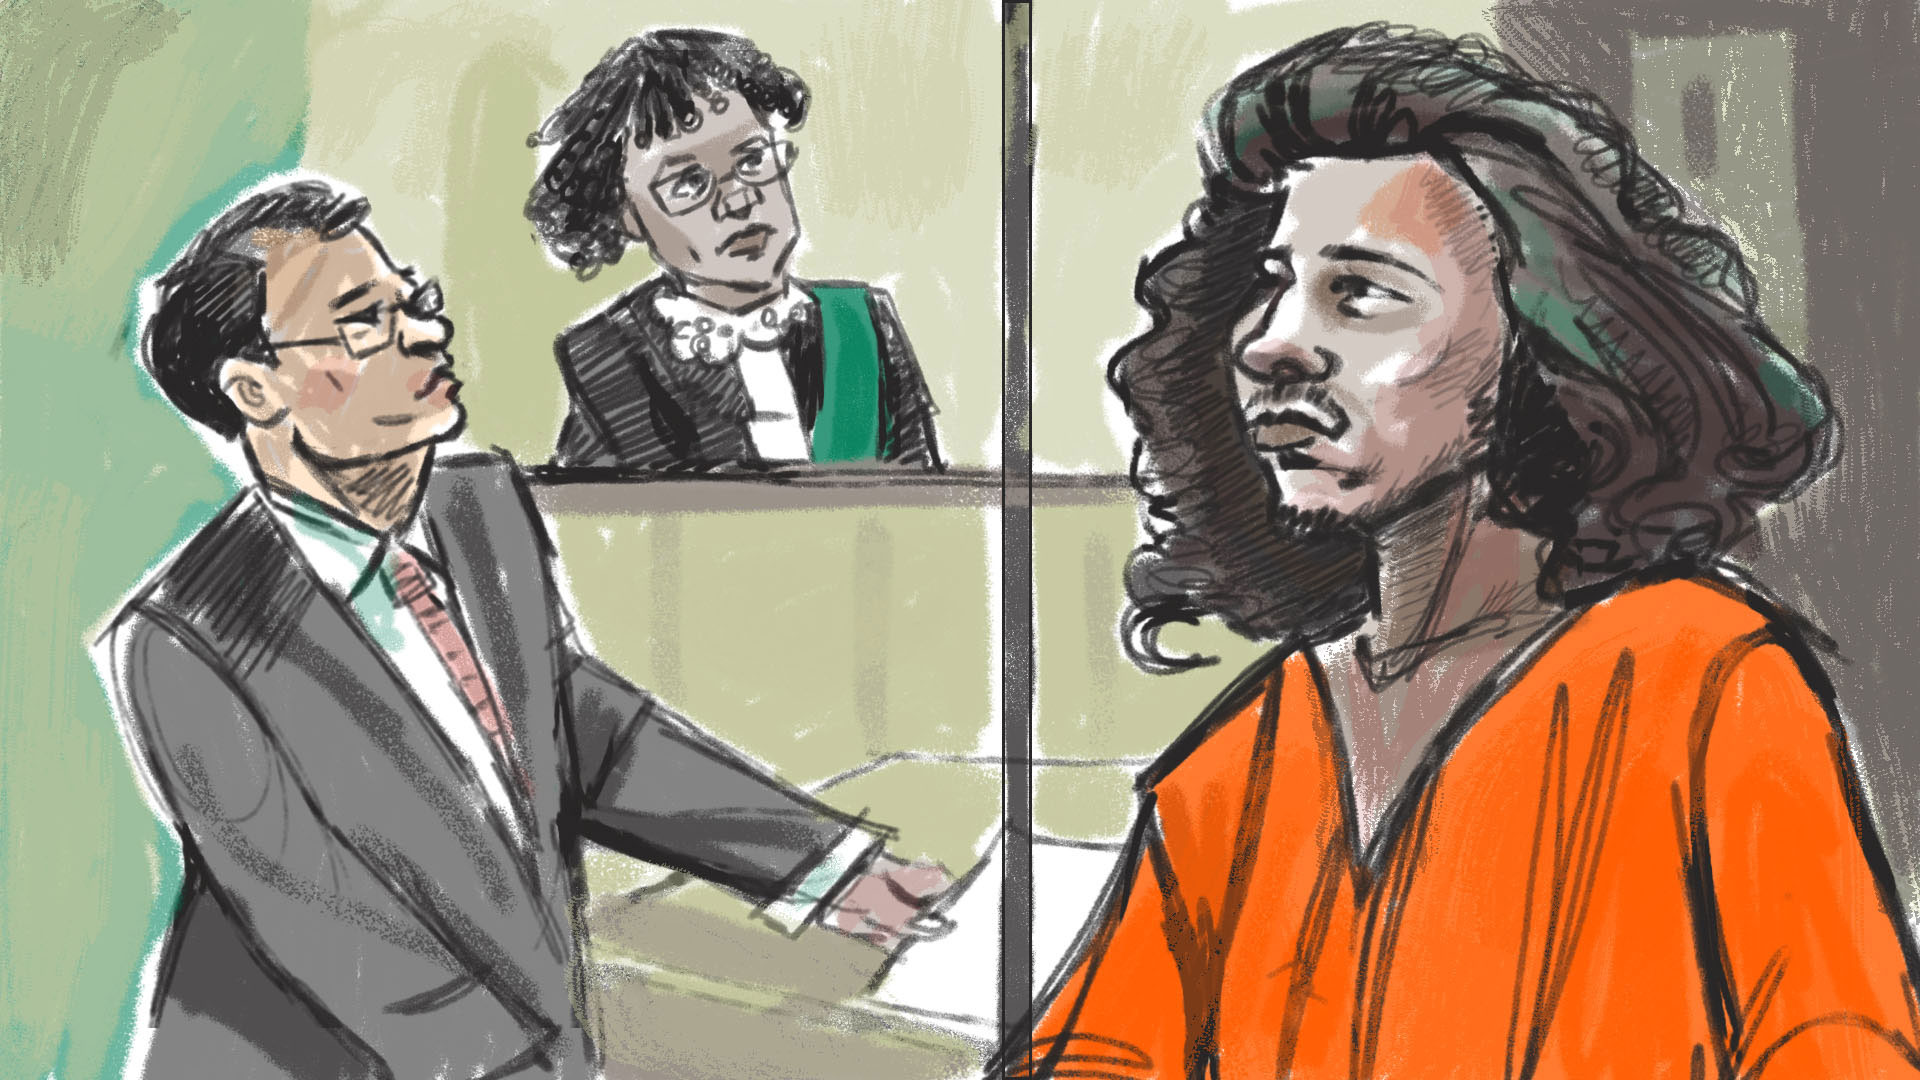 Sinbad King Simba Marshall, 21, charged with second-degree murder in the death of an elderly woman in east-end Toronto,  appears in court on Nov. 13, 2015. CITYNEWS/Marianne Boucher.